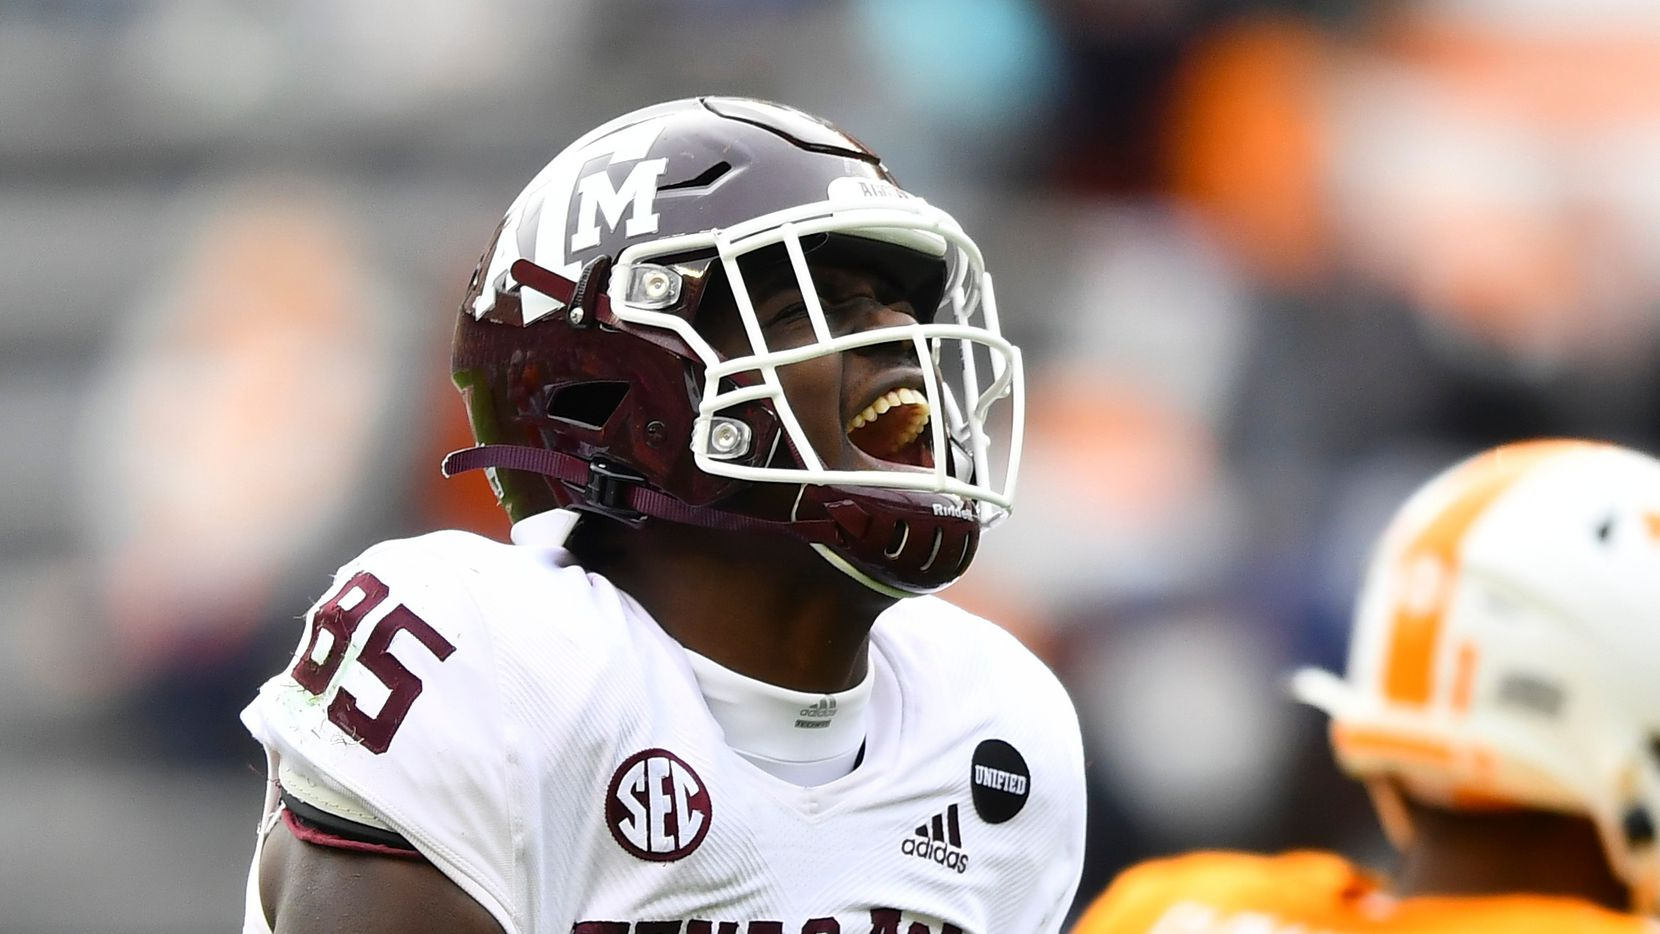 Texas A&M tight end Jalen Wydermyer (85) celebrates During an NCAA college football game against Tennessee in Neyland Stadium in Knoxville, Tenn., Saturday, Dec. 19, 2020.